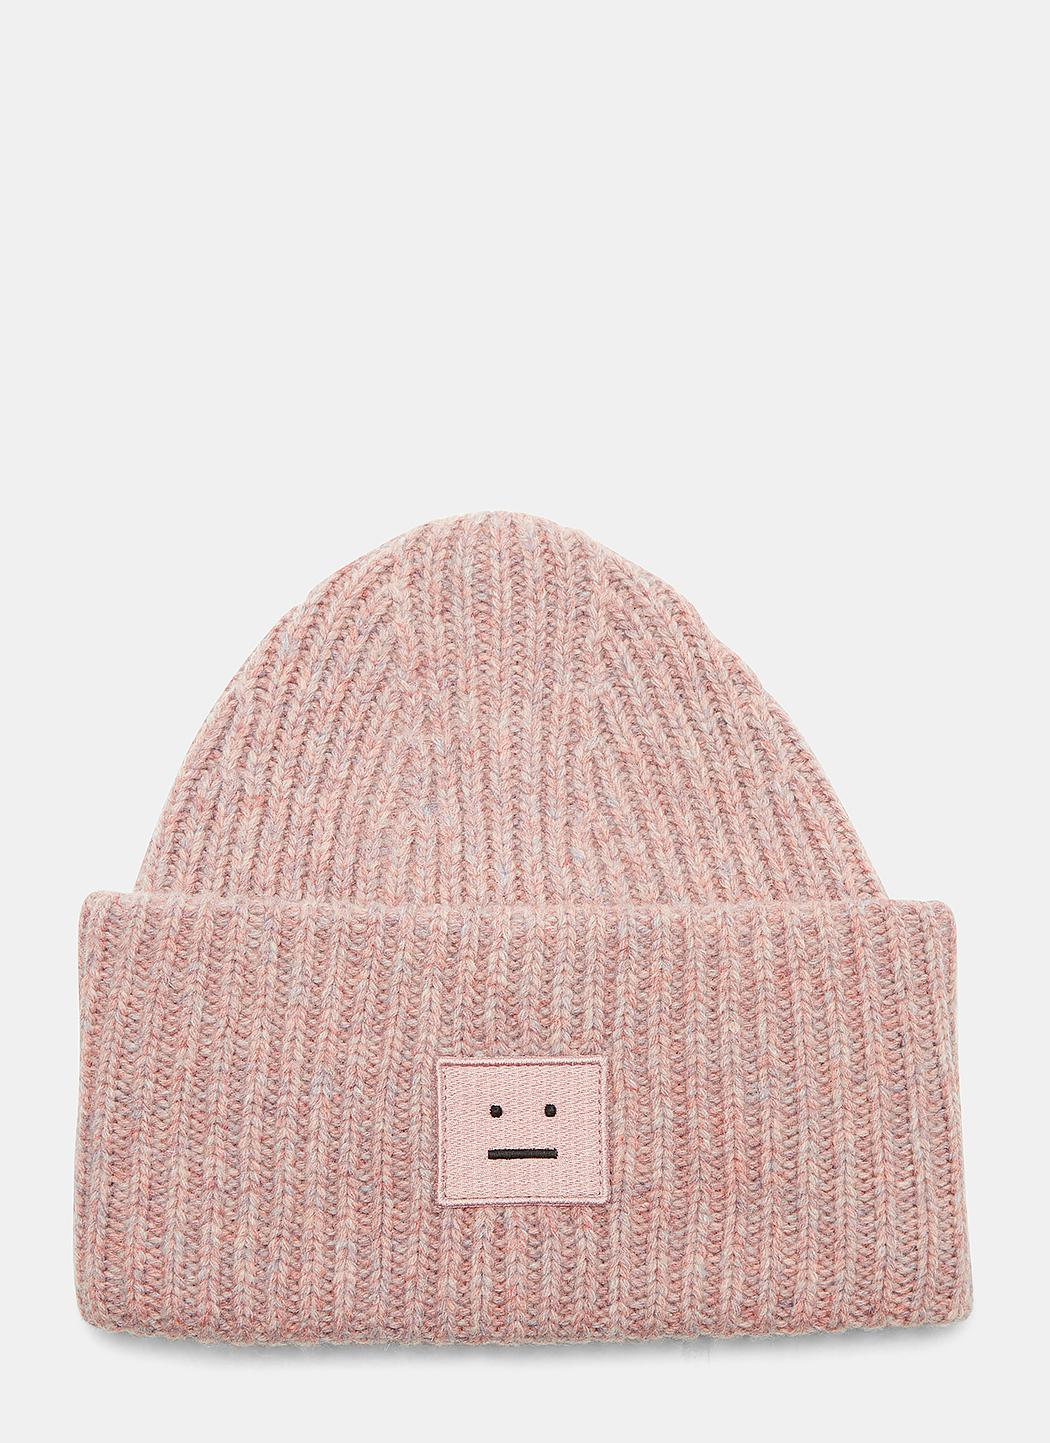 Acne Studios Pansy Large Face Hat In Pink Mélange in Pink - Lyst eb1c9b1a9ff4